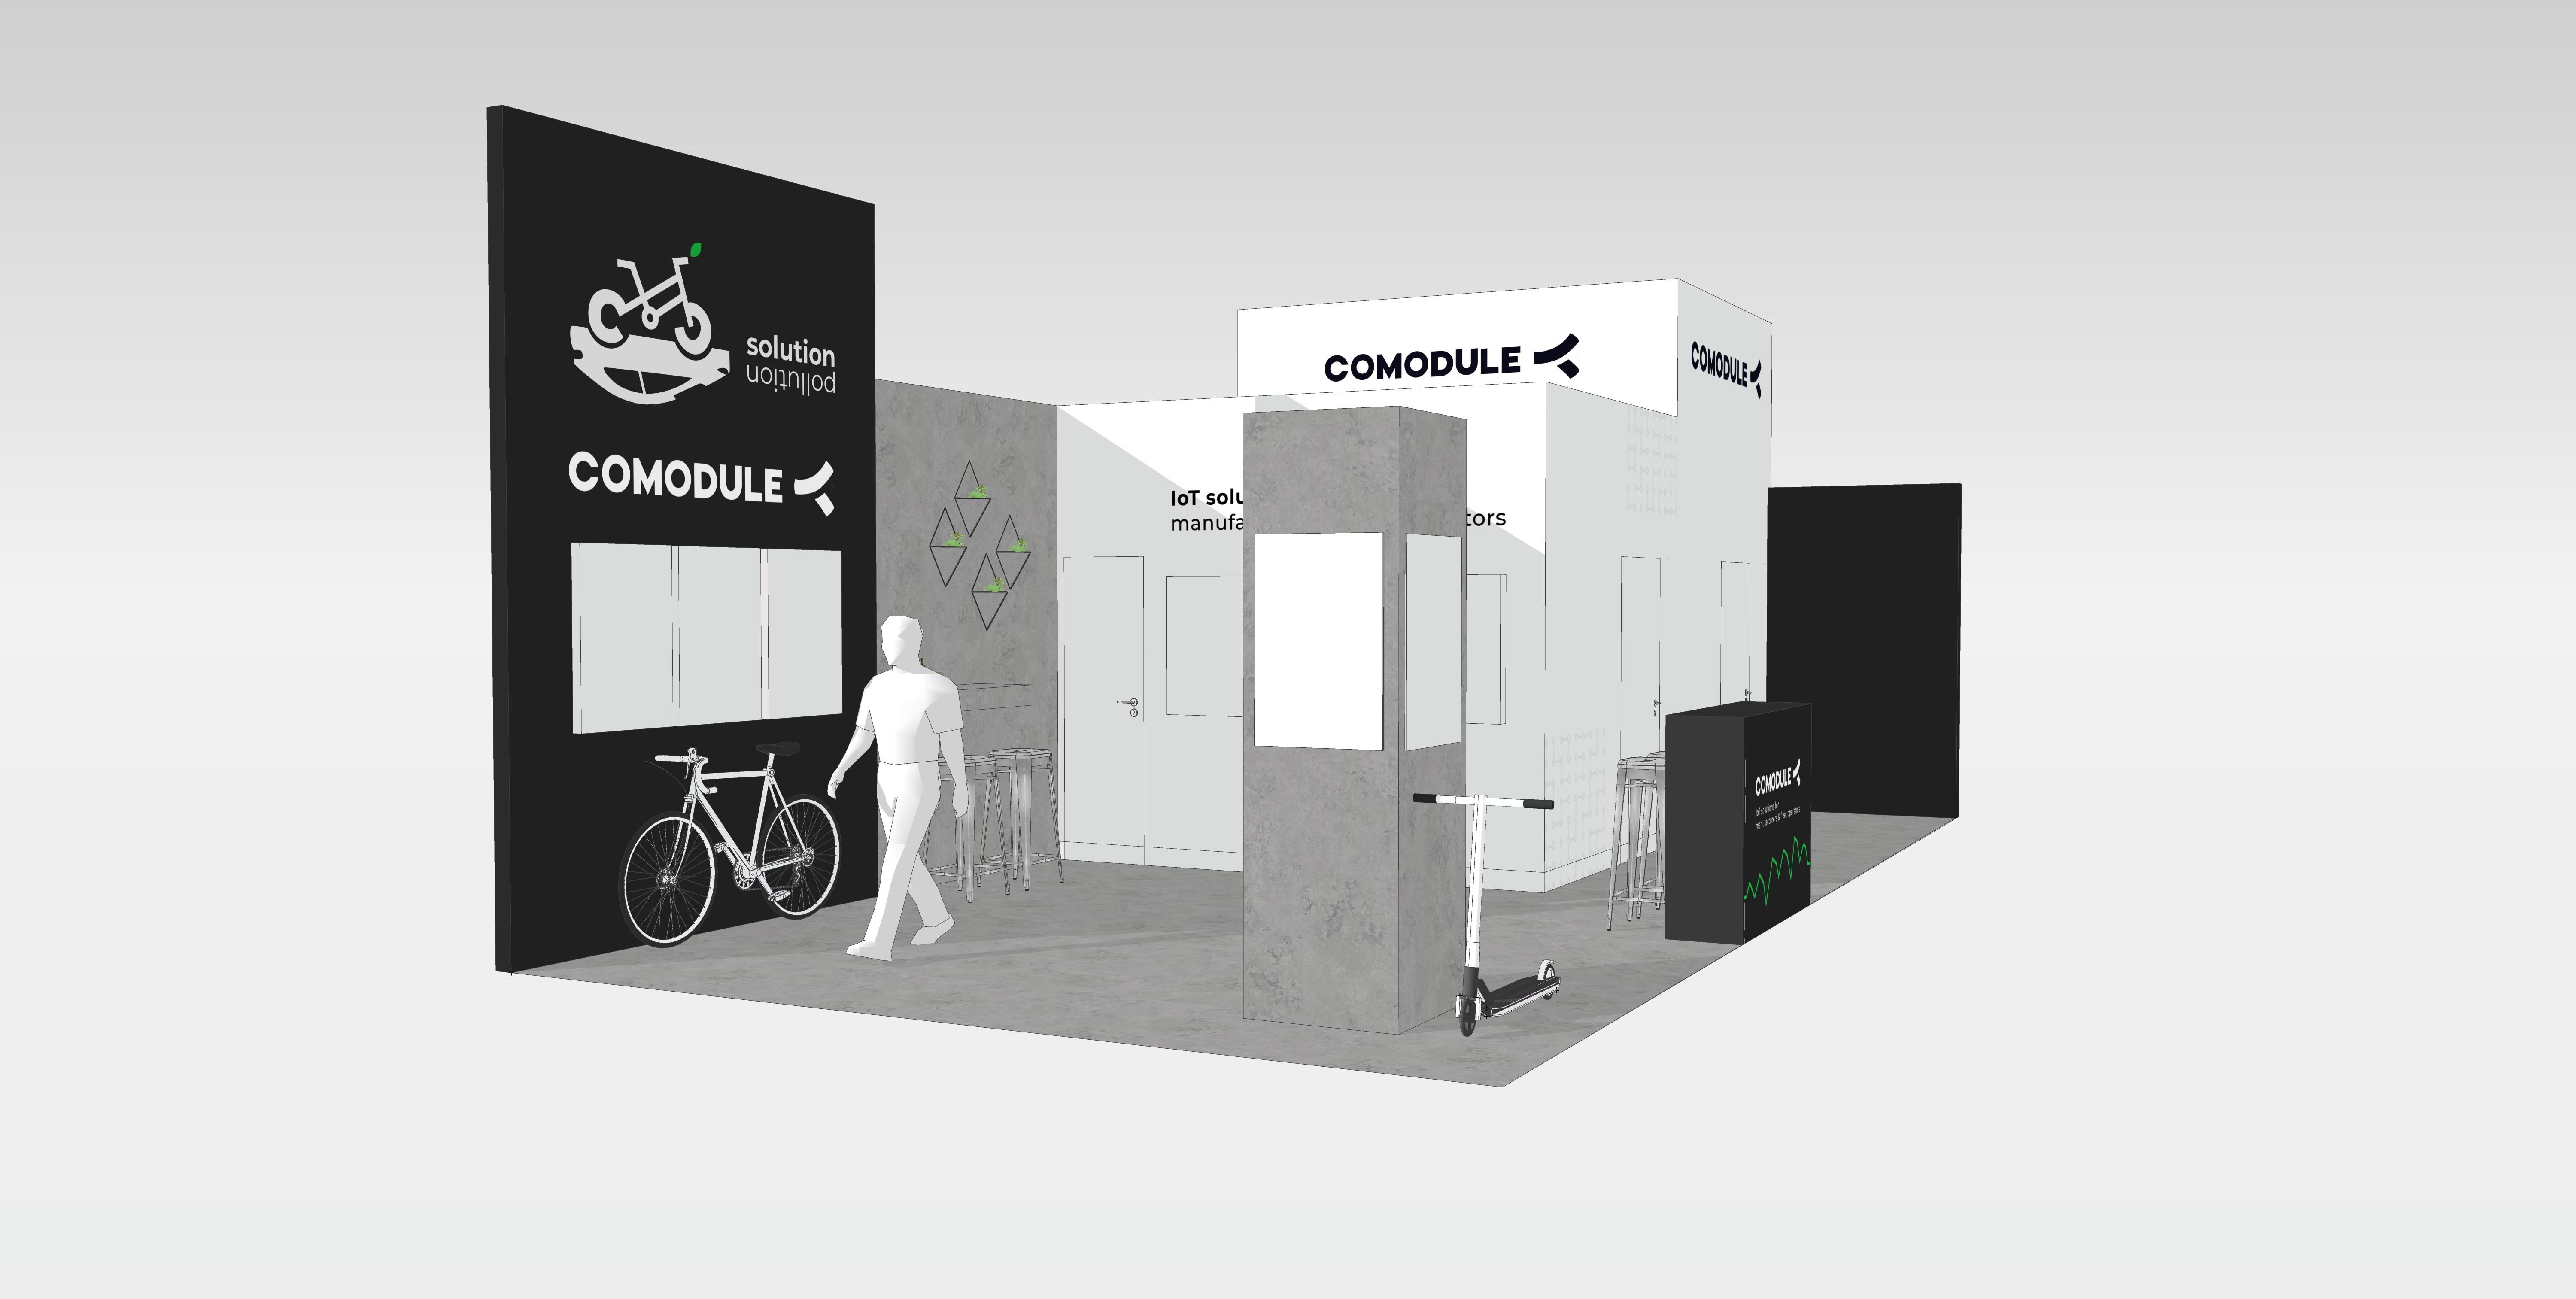 The Value of IoT for the E-Bike Industry Presented at Eurobike 2019 by COMODULE